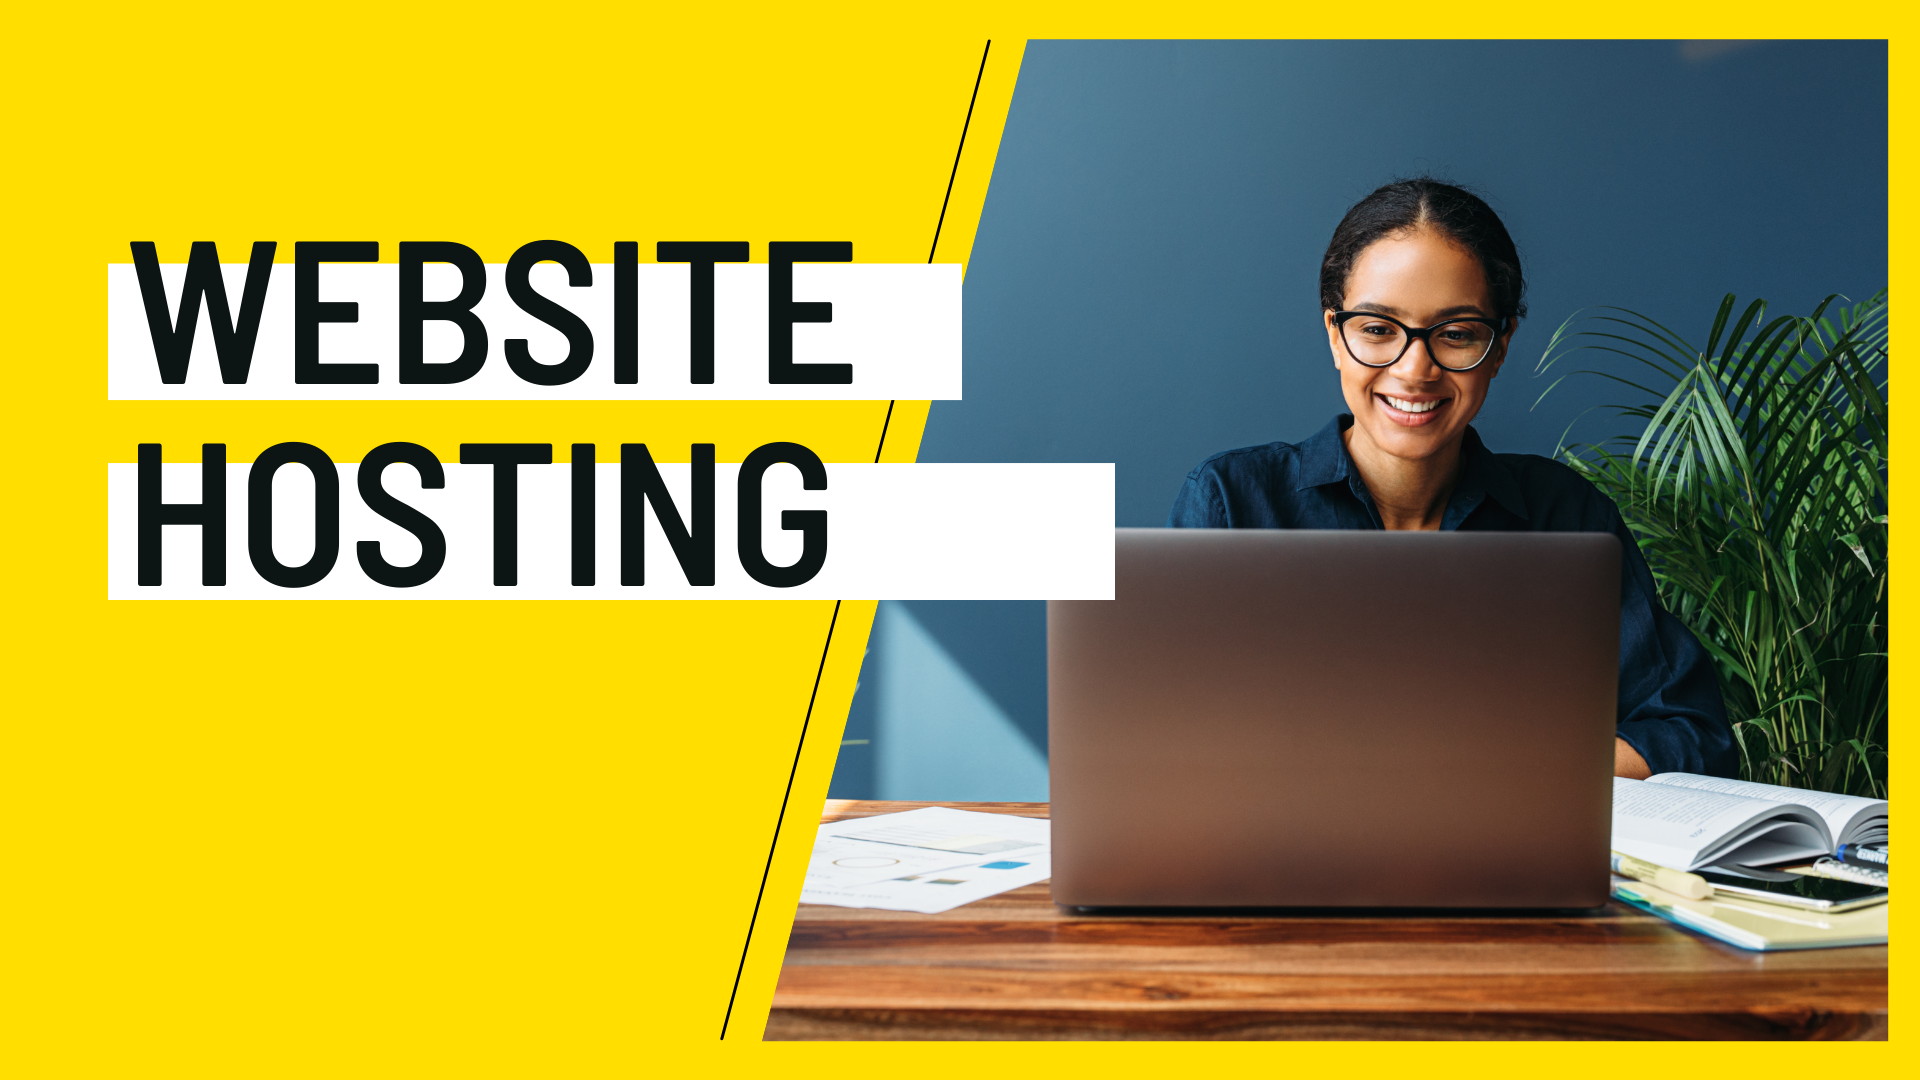 A2 Hosting – A Great Choice for New Websites